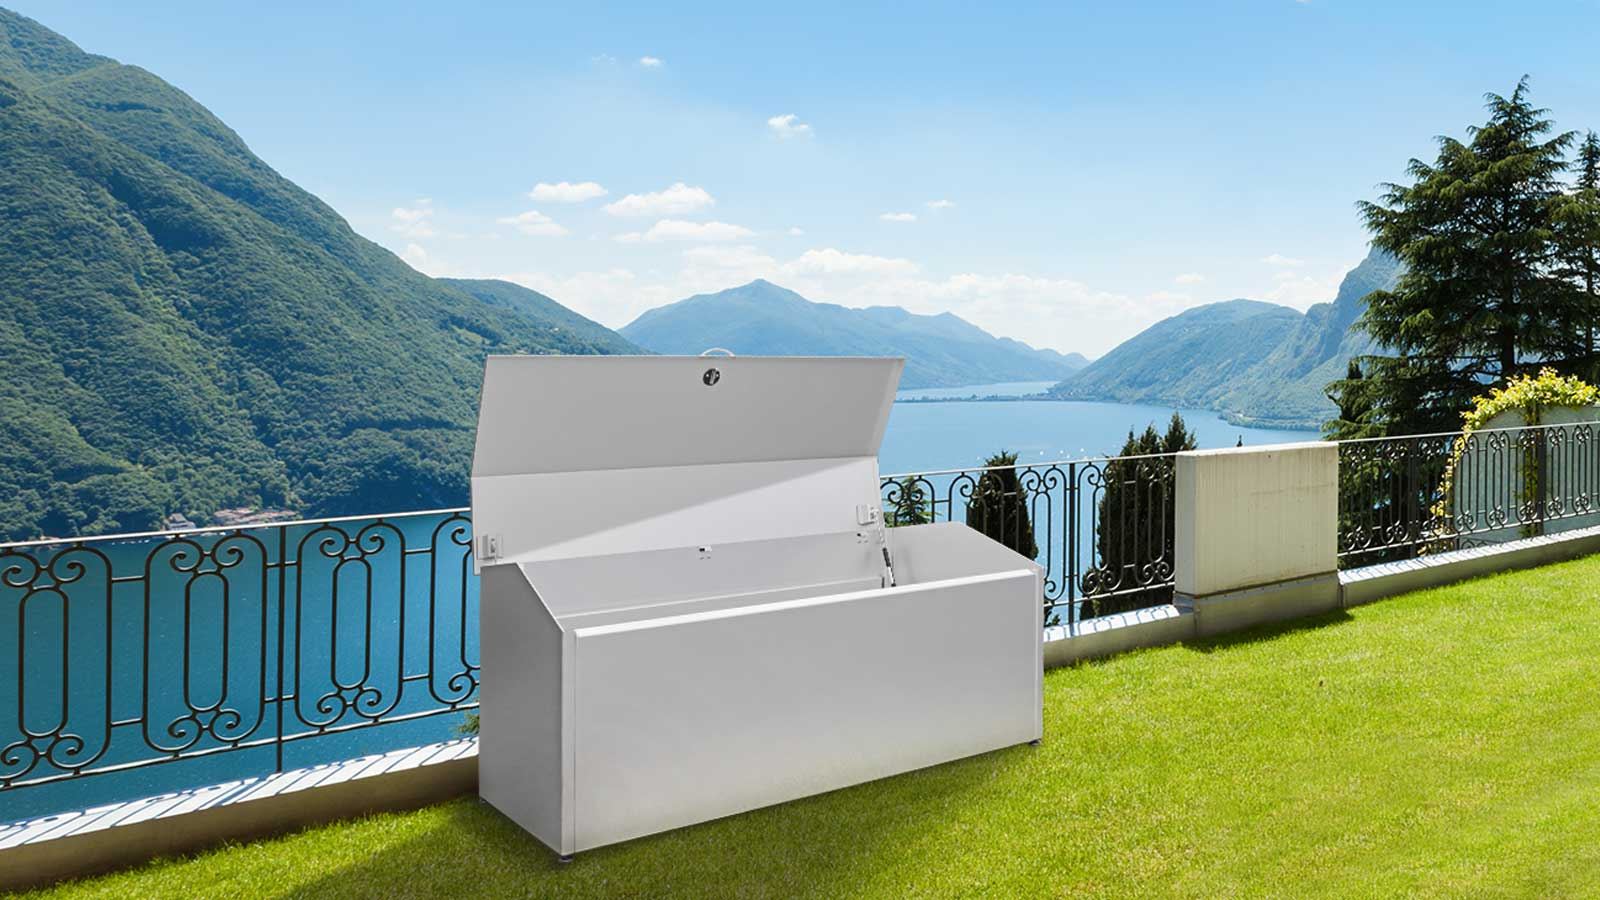 Storage box for garden, balcony and terrace from Velopa